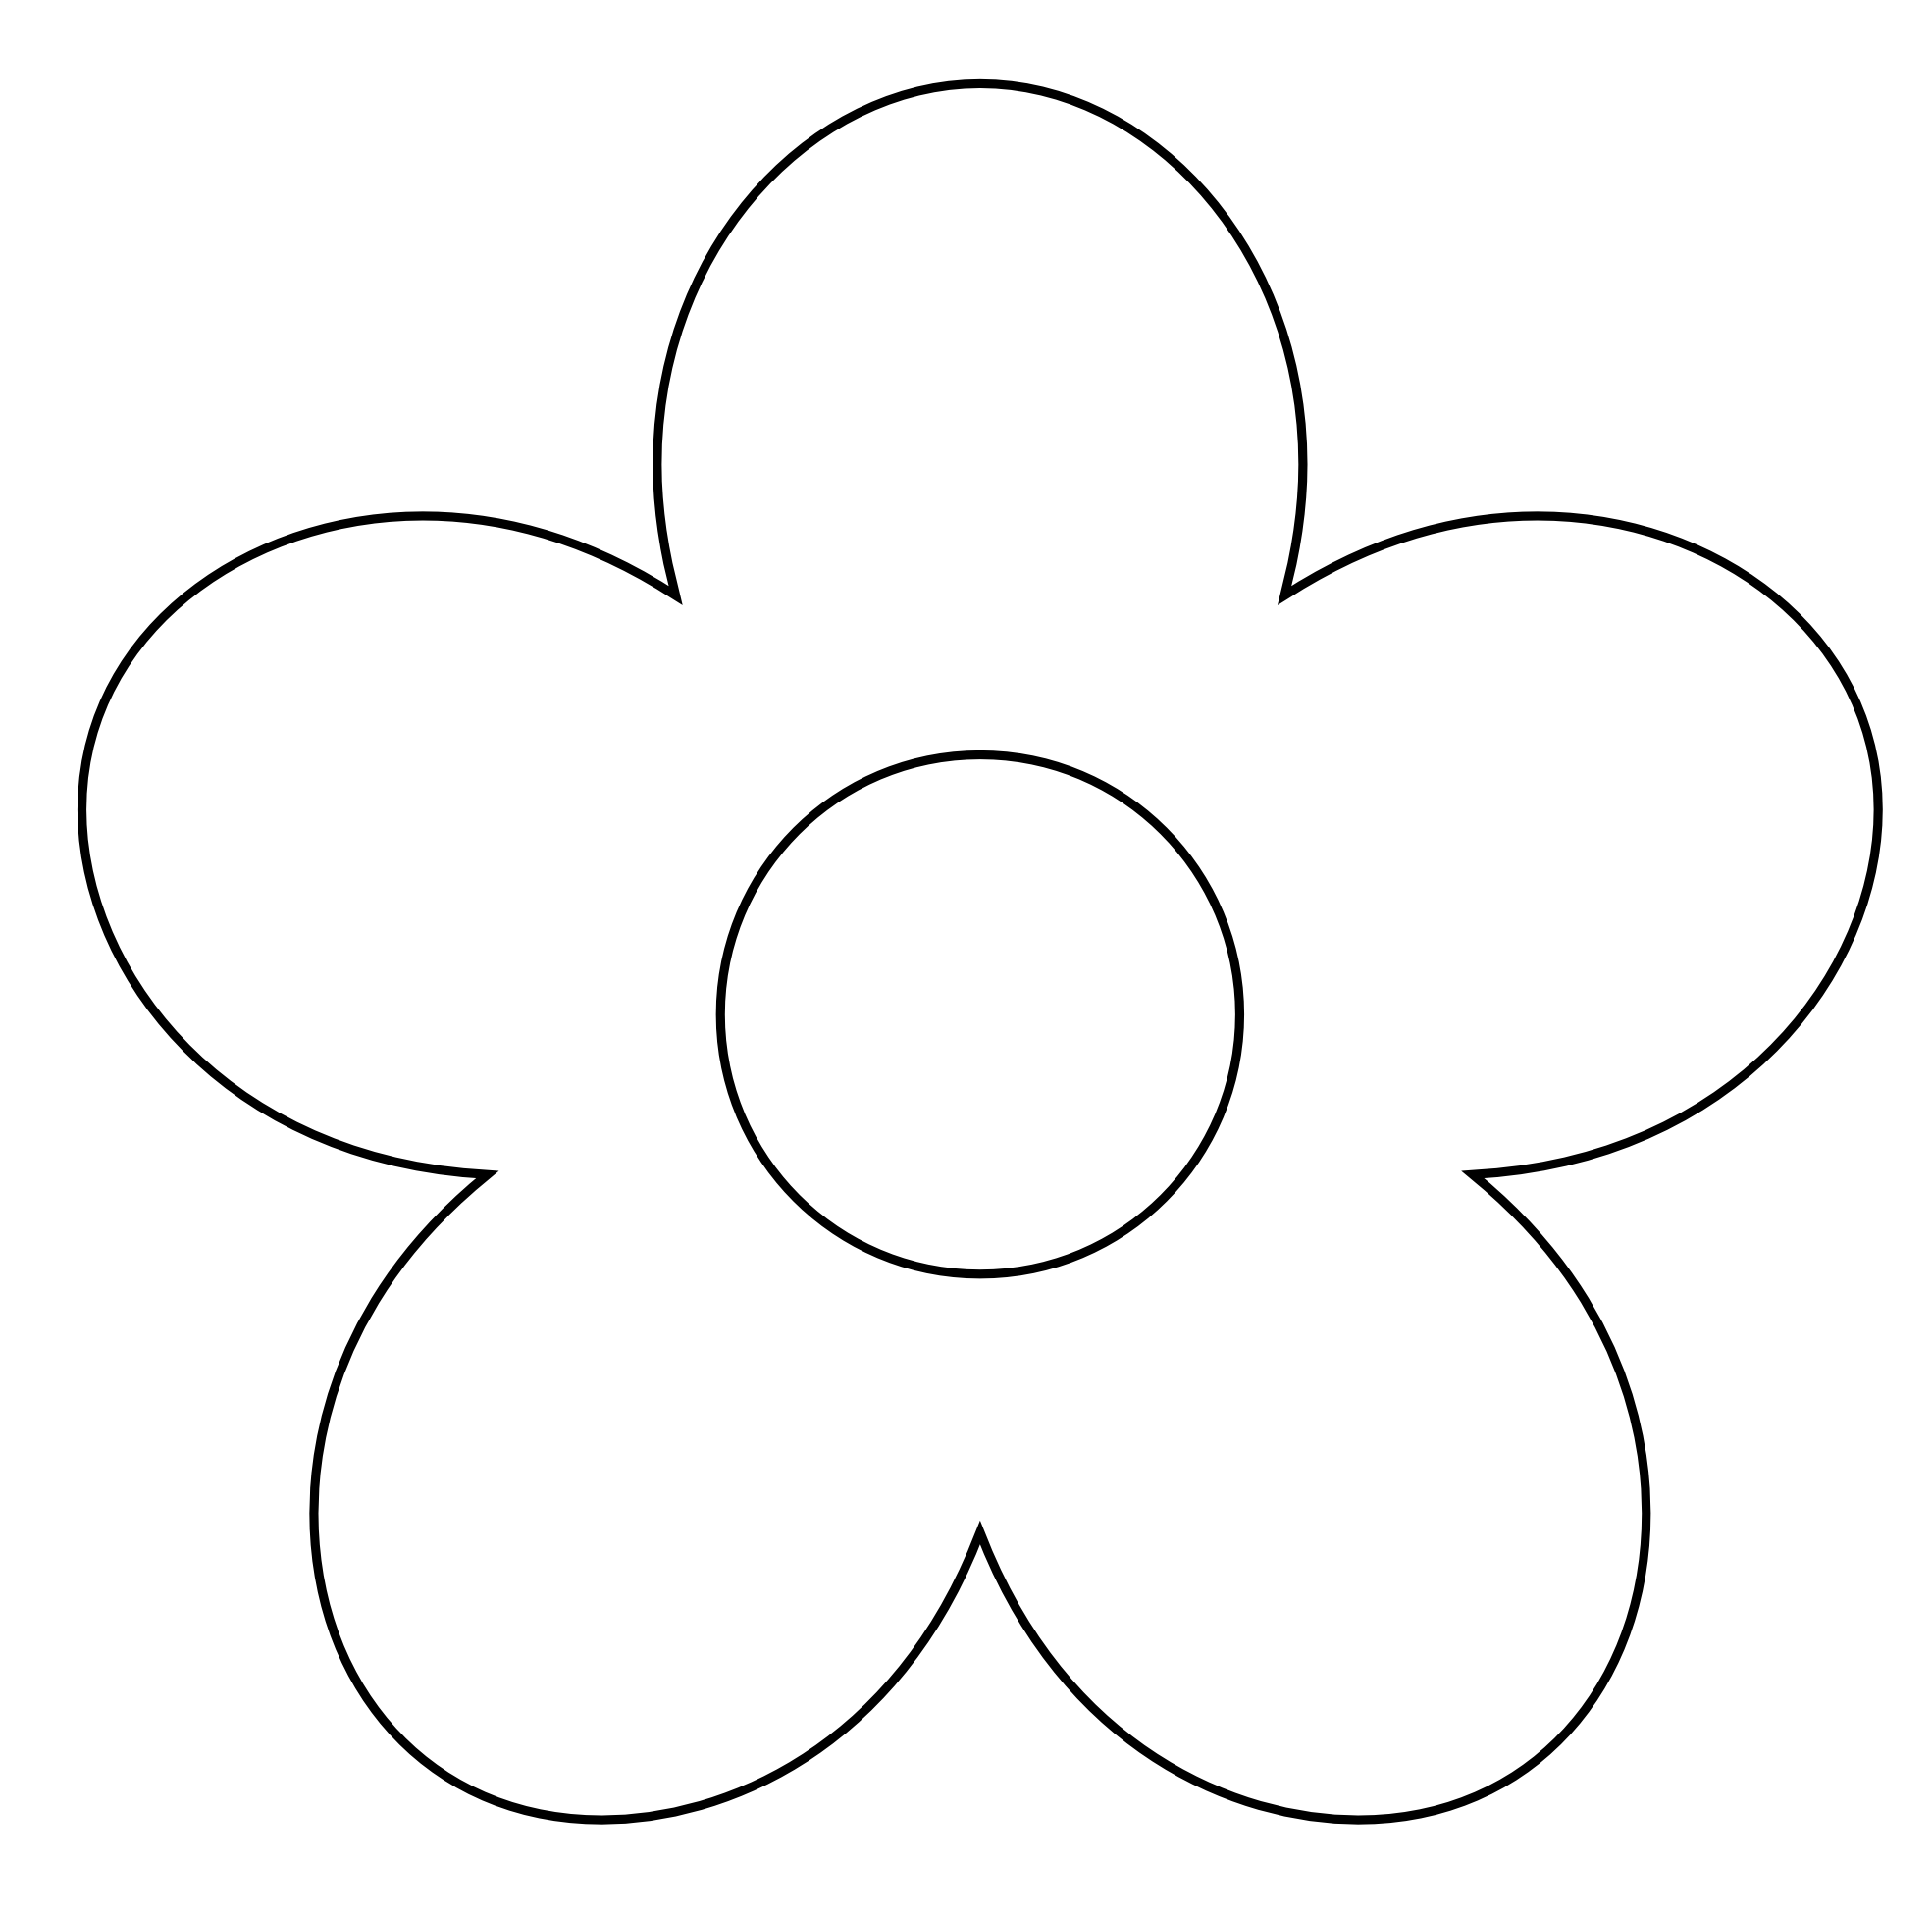 White Flower clipart Flower%20clipart%20black%20and%20white And Simple  Panda